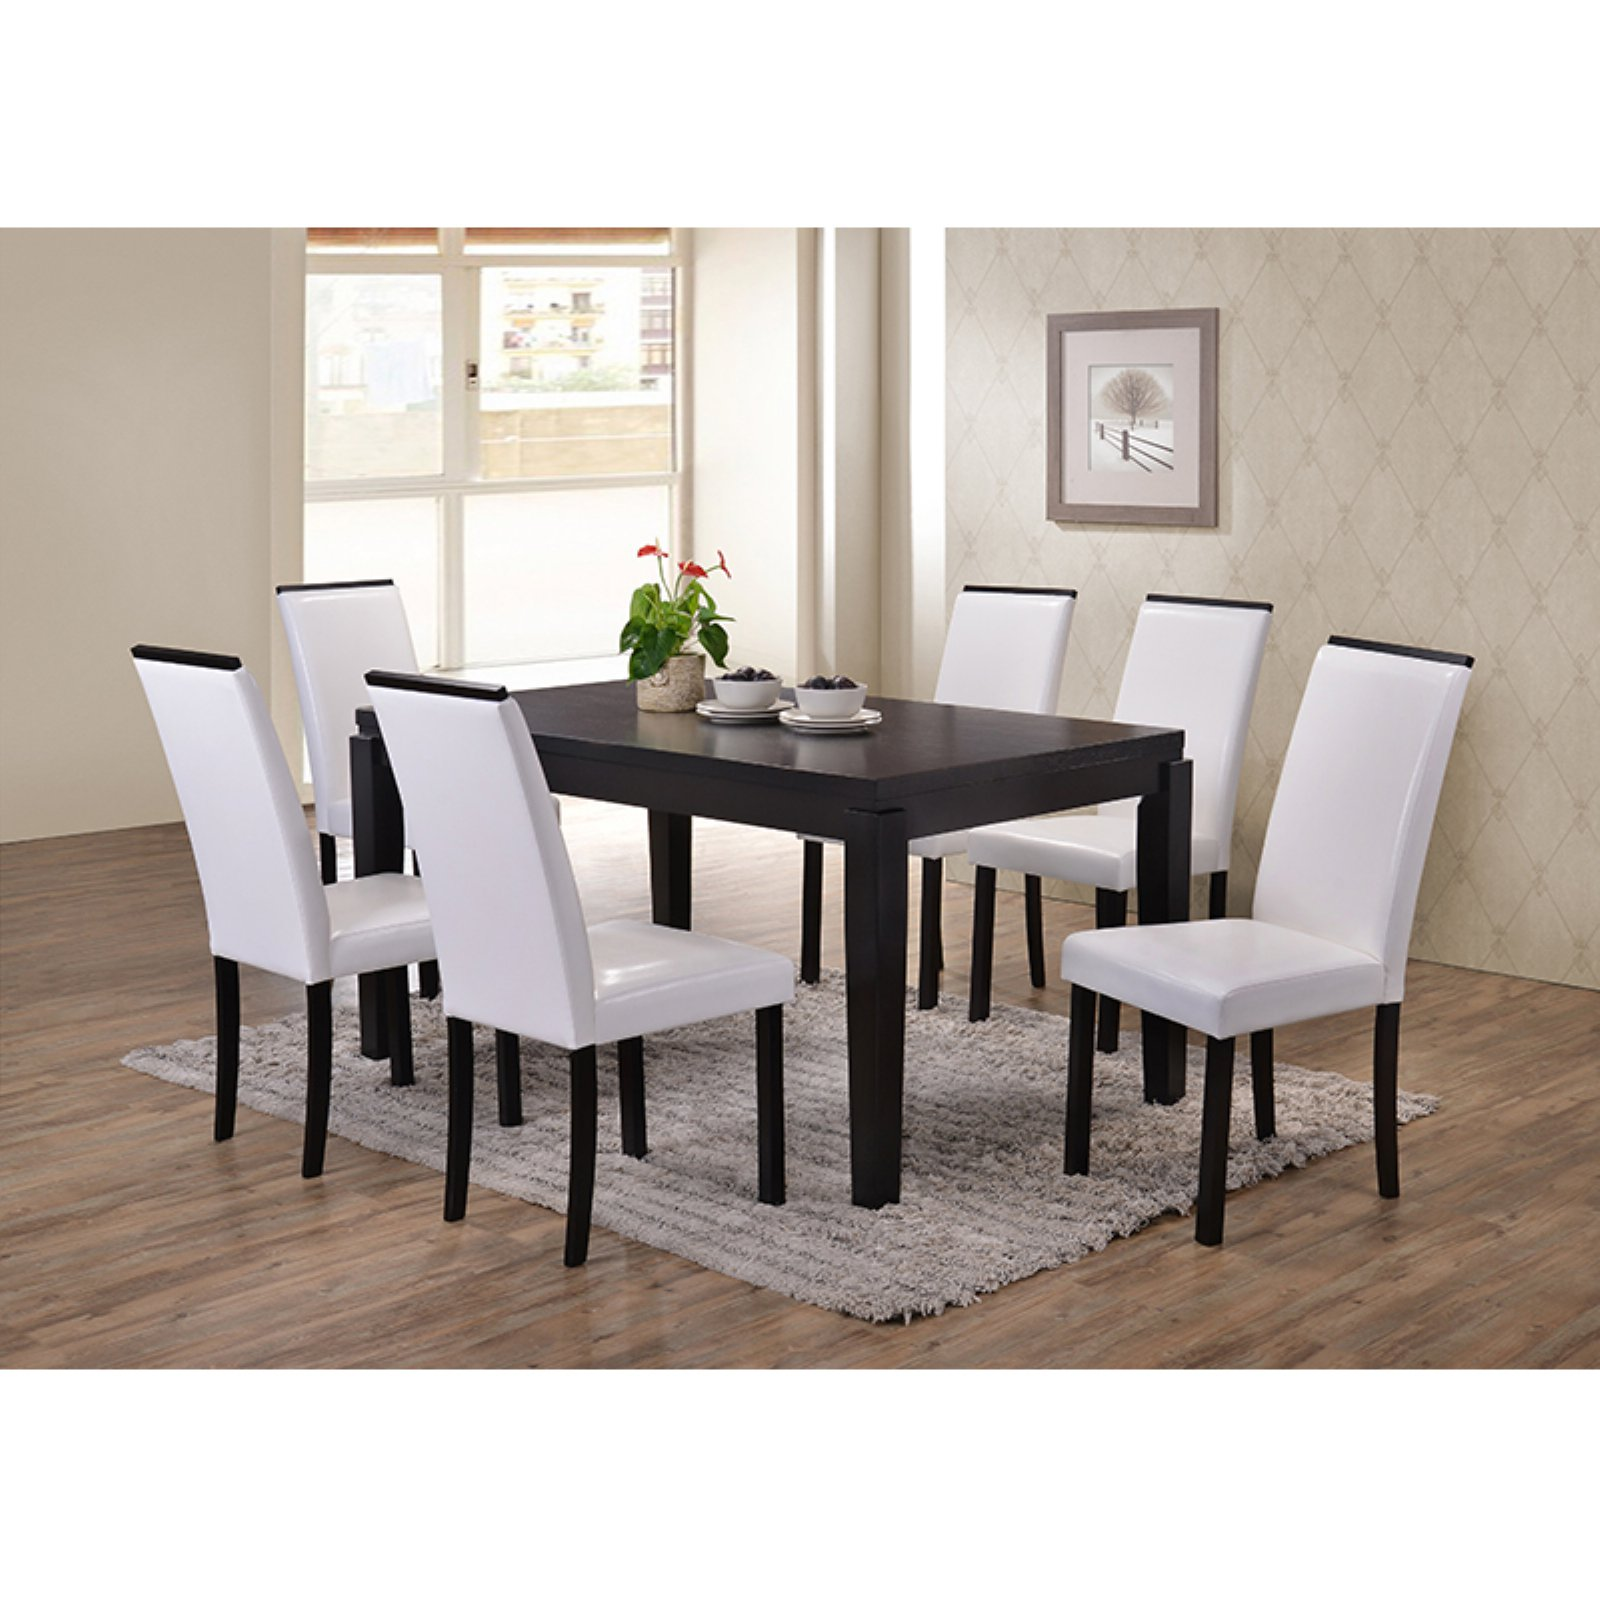 K U0026amp; B Furniture Hatfield 7 Piece Dining Set